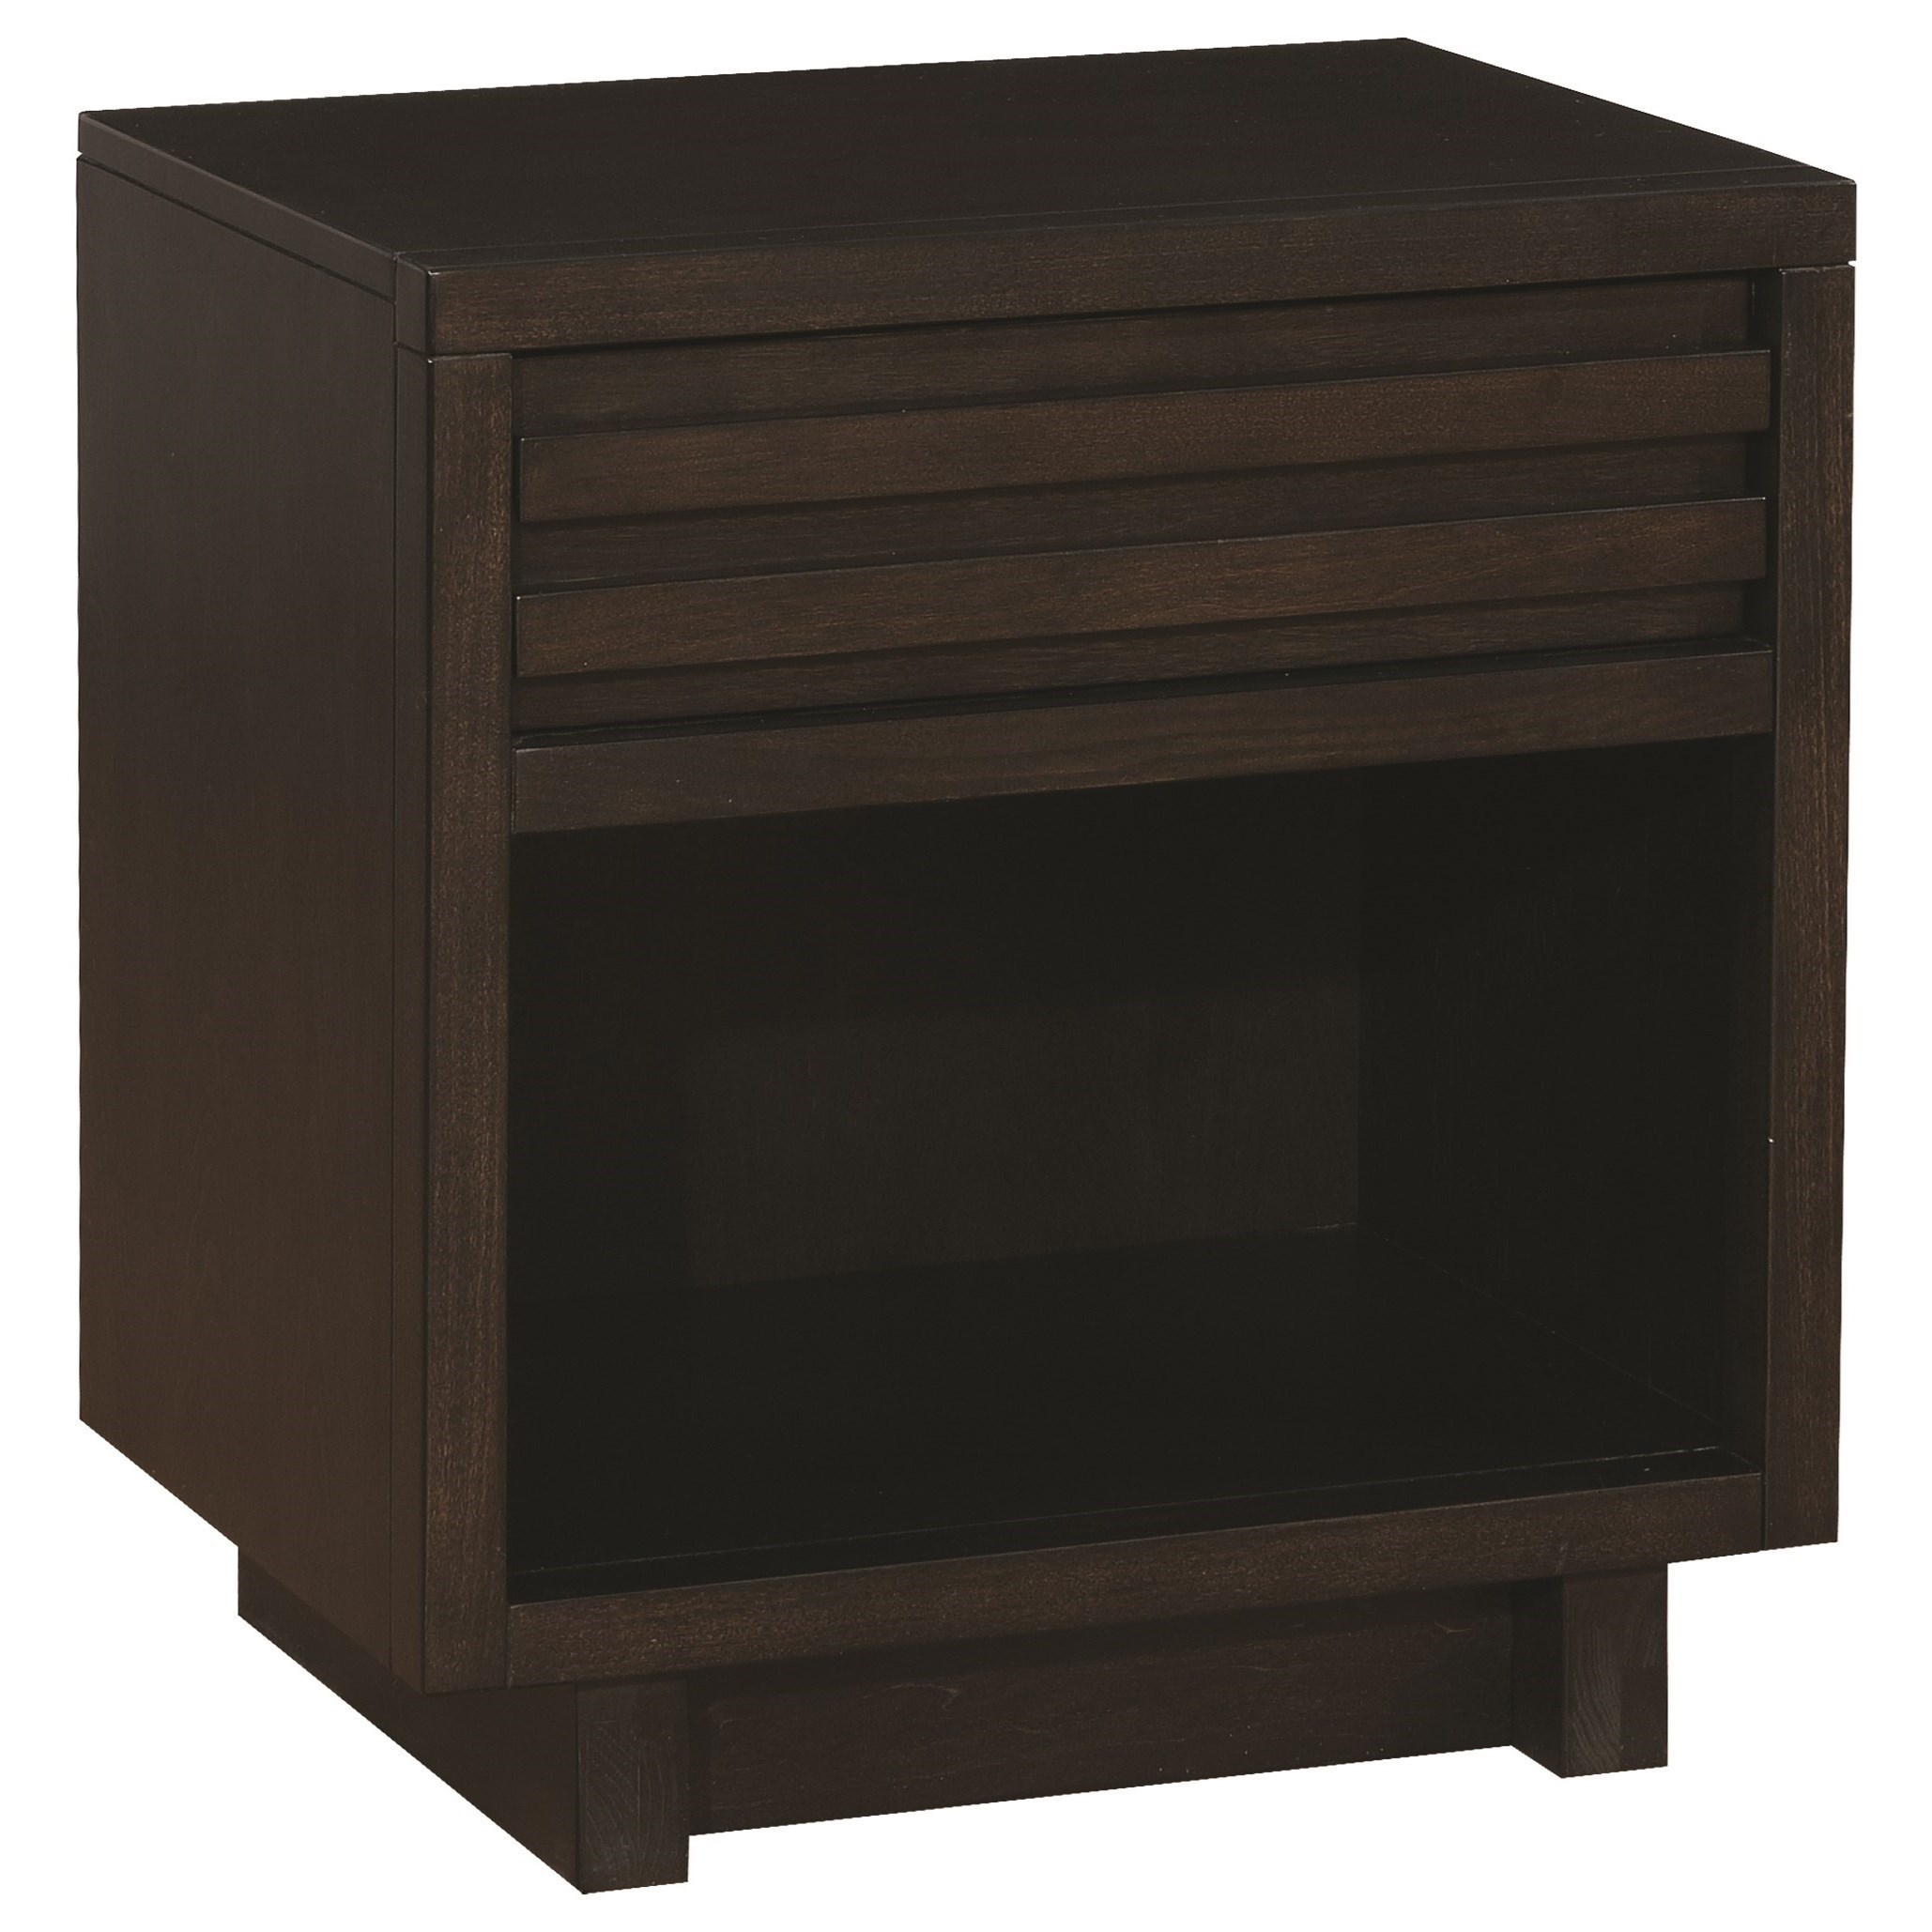 Scott Living Matheson Contemporary Nightstand With Finger Tip Drawer |  Belfort Furniture | Night Stands